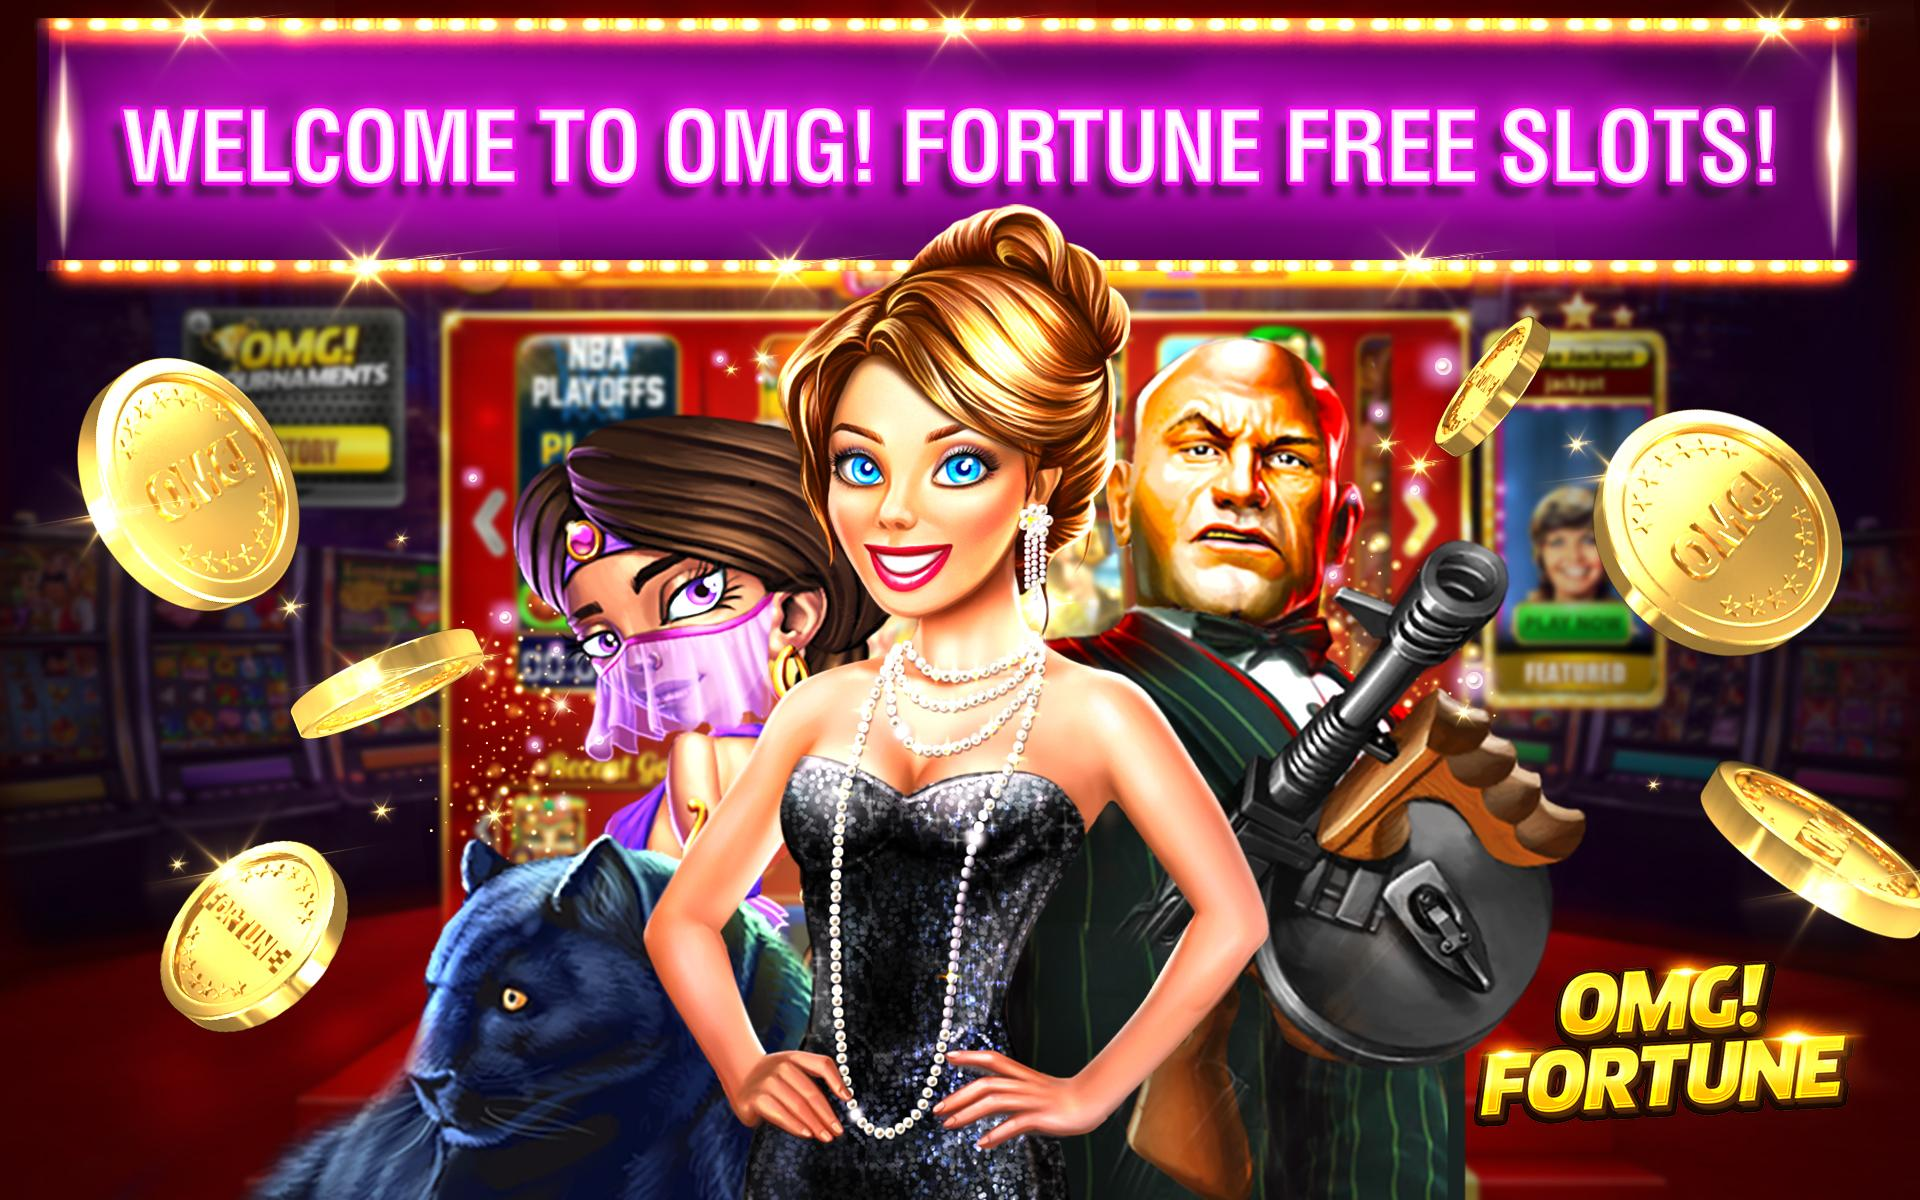 OMG! Fortune Free Slots Casino screenshot #11